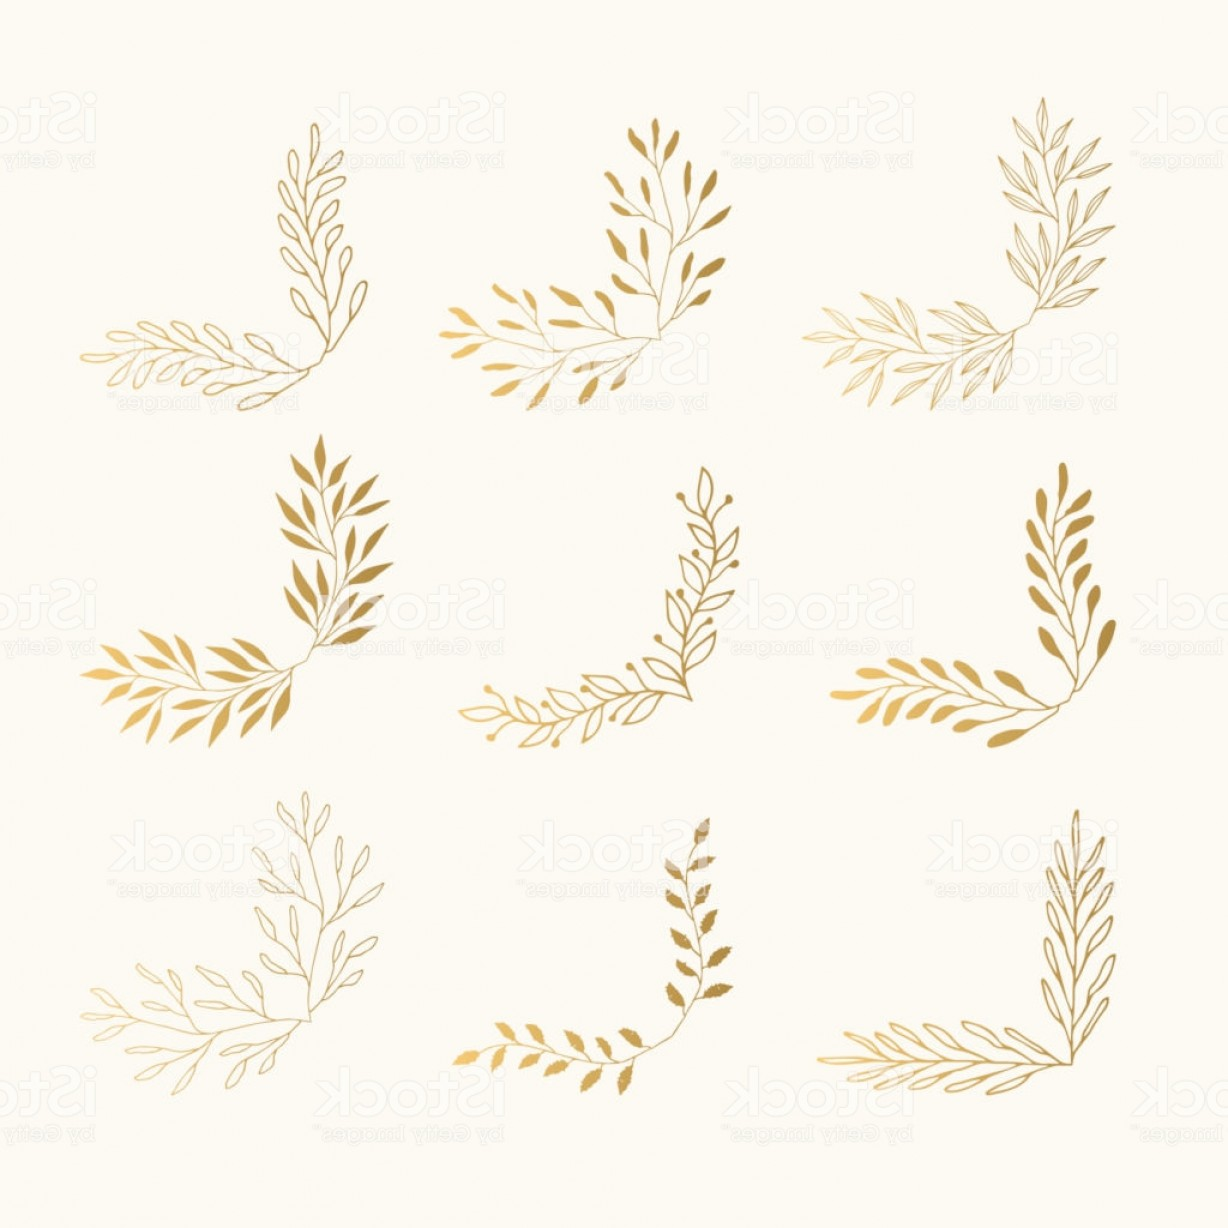 Wheat Flourishes Vector: Golden Floral Corners Sketched Vector Illustration Fancy Borders Flourish Page Gm